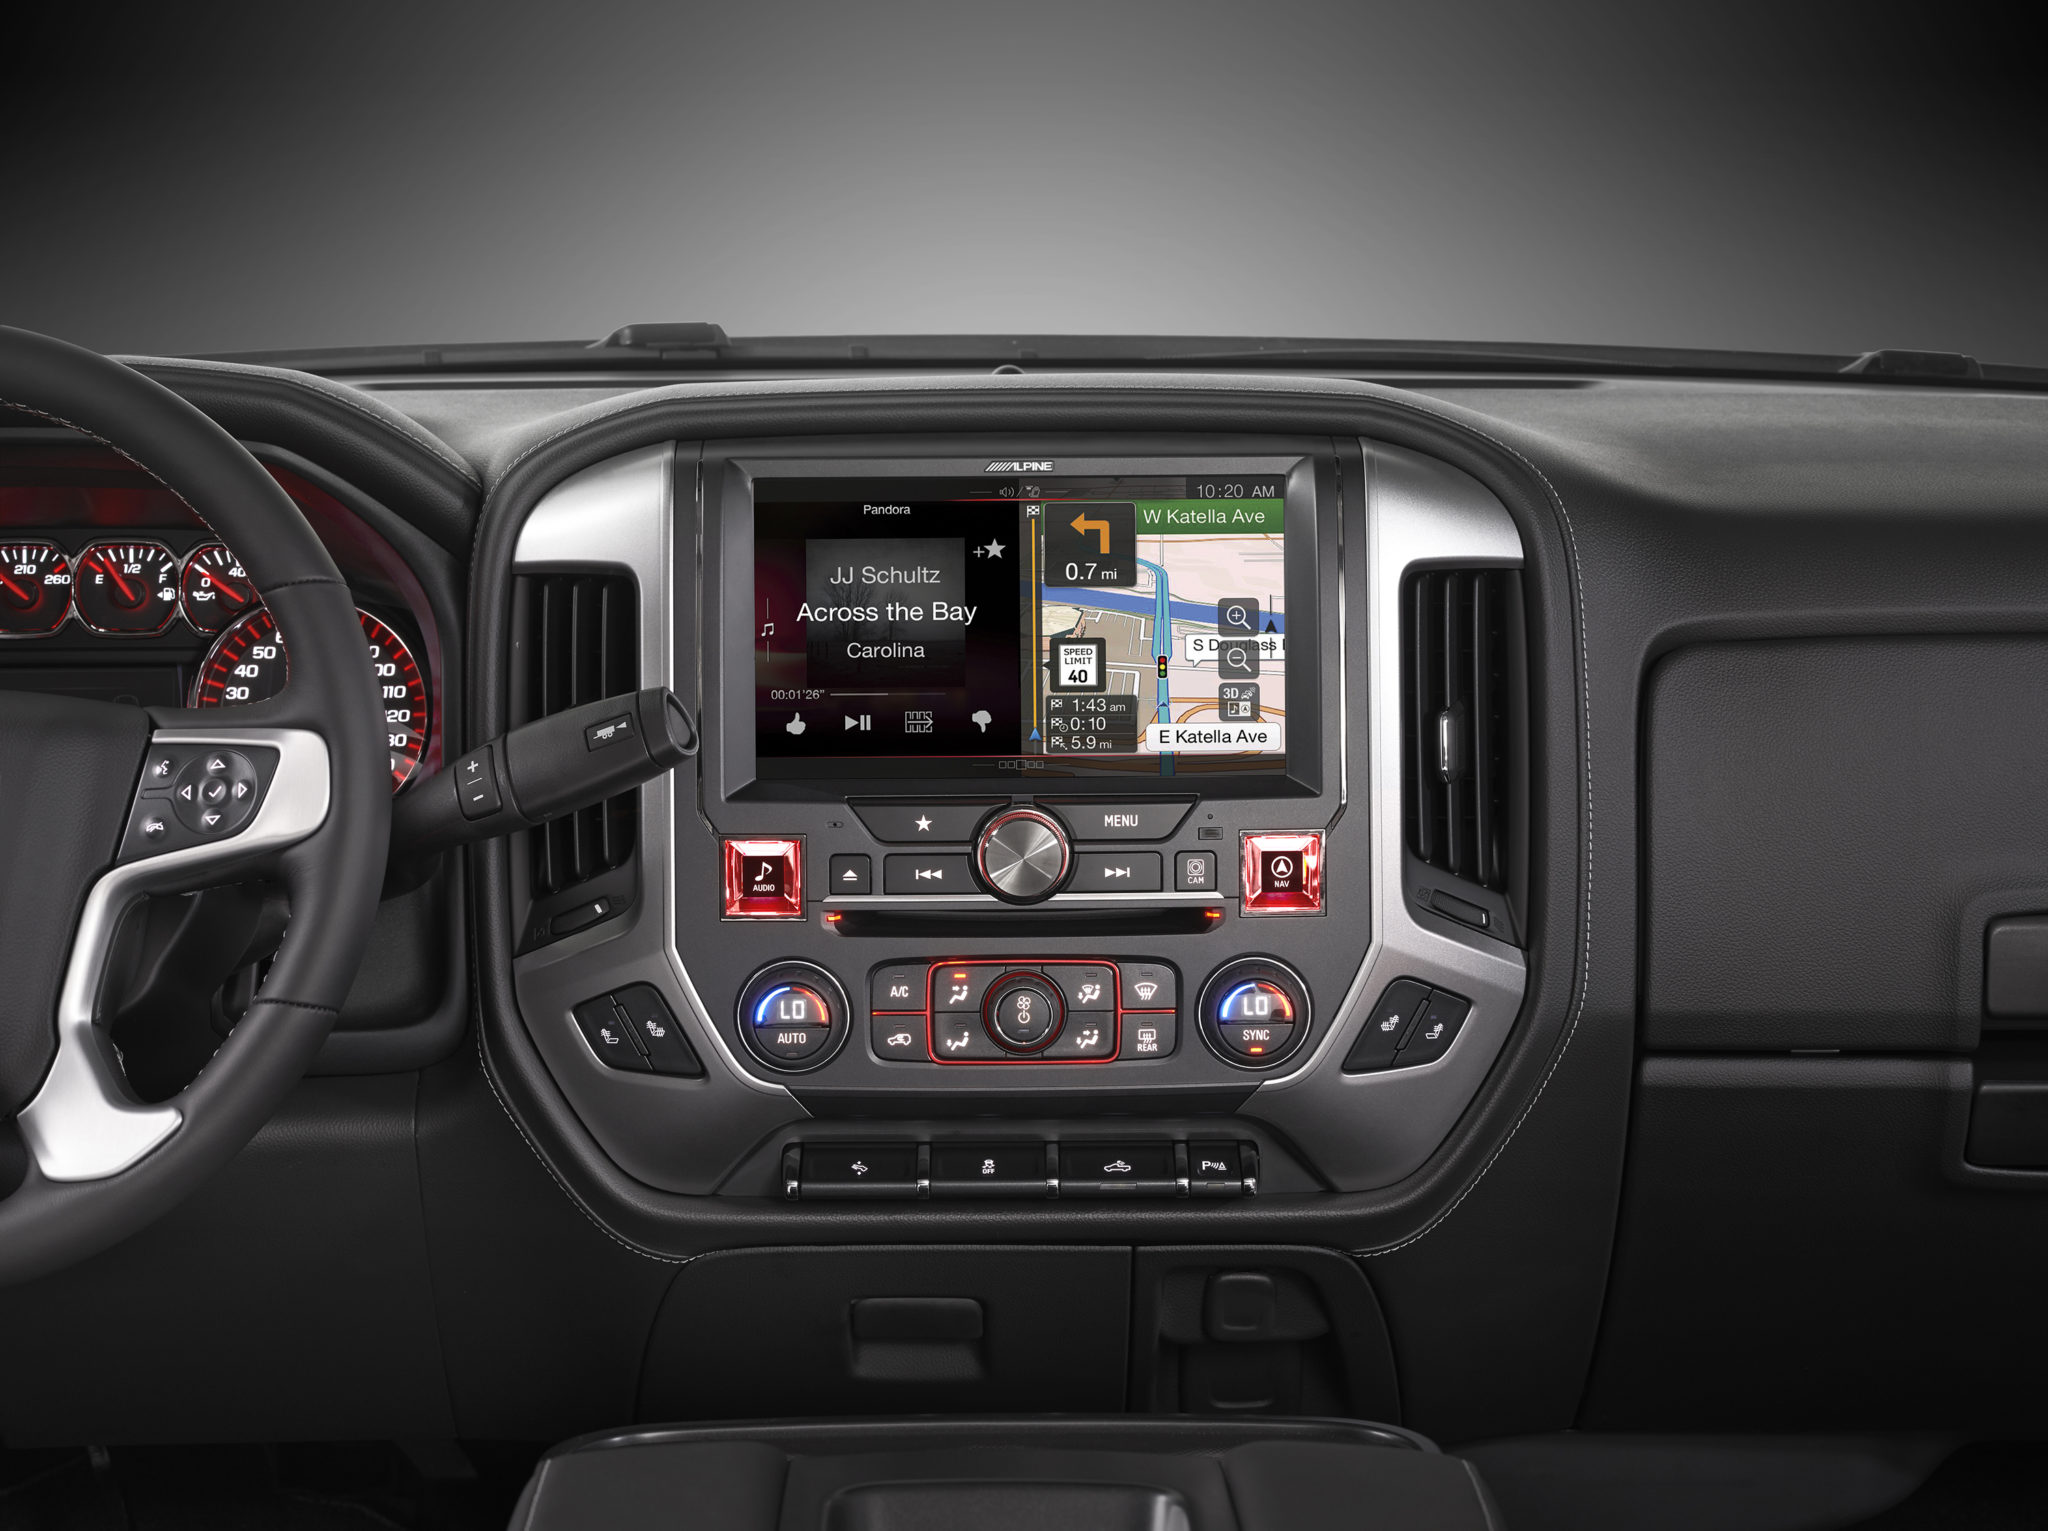 Alpine Restyle In Dash Navigation System For 2014 Gmc